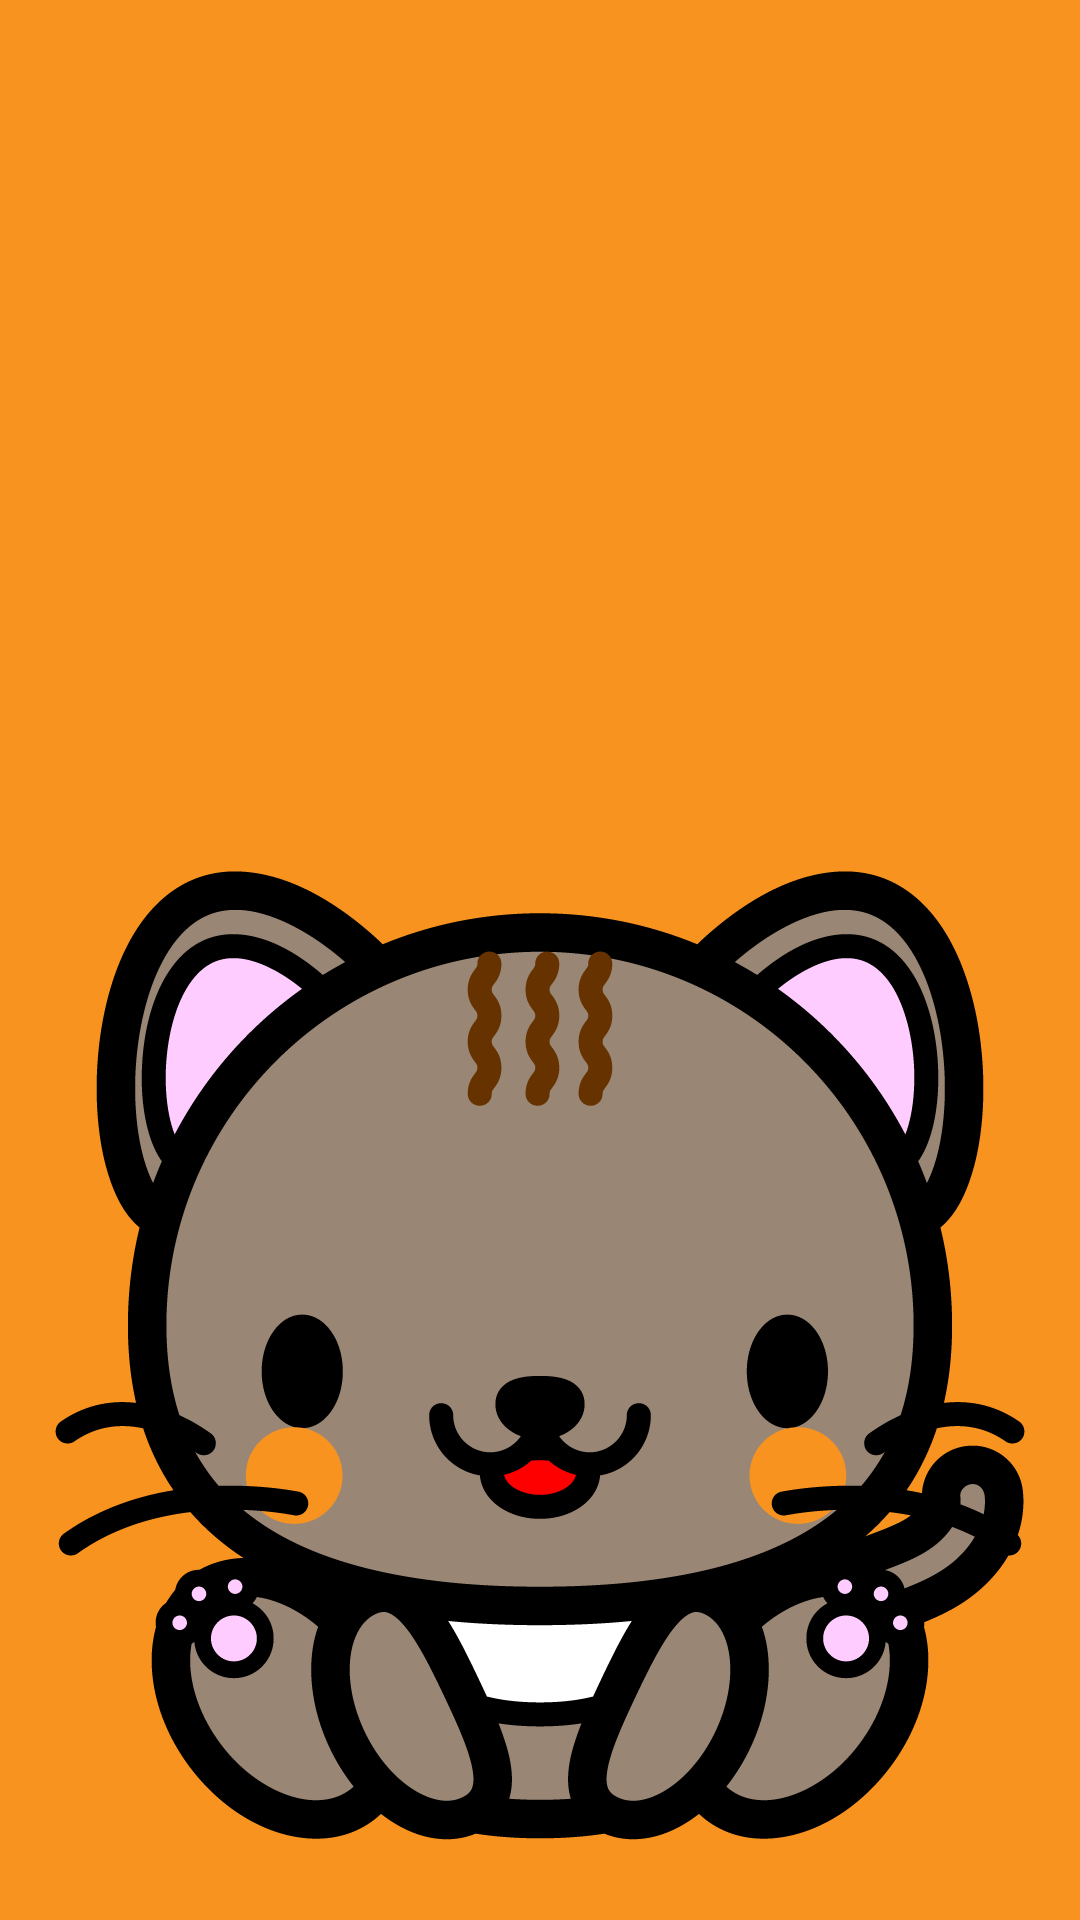 wallpaper1_sitcat-orange-iphone